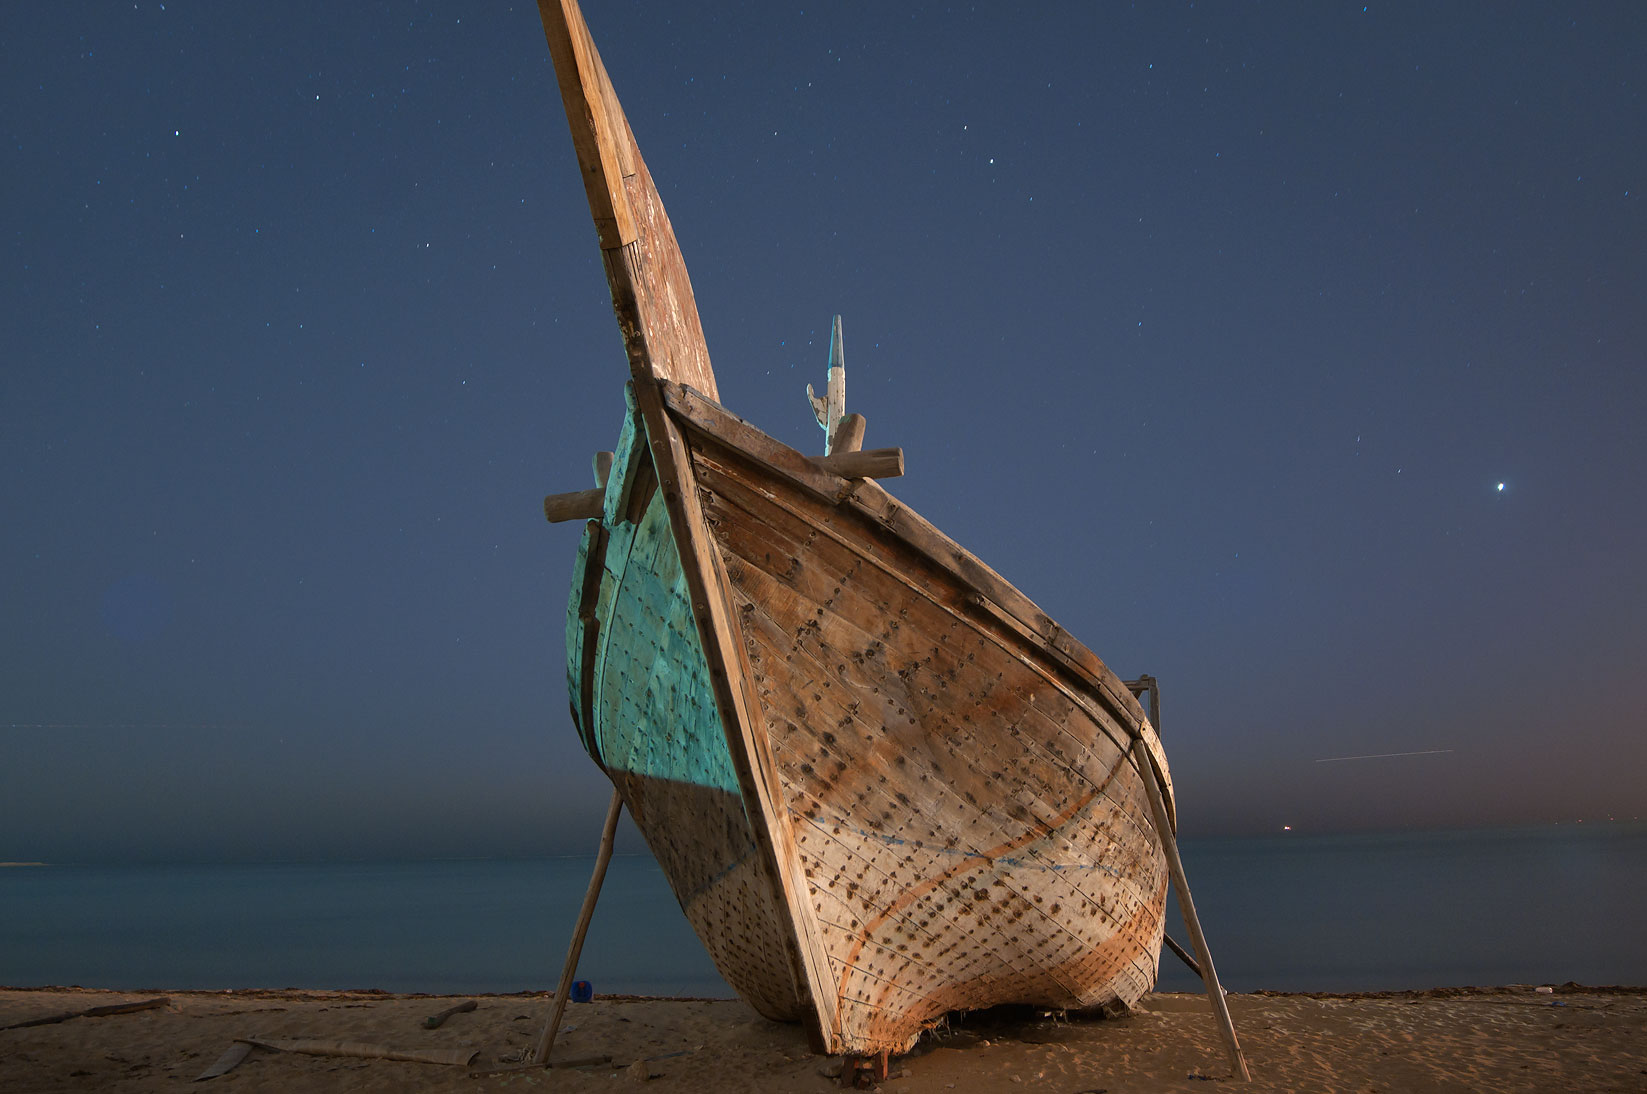 Dhow fishing boat on a beach in heritage village at early morning. Al Wakrah, Qatar